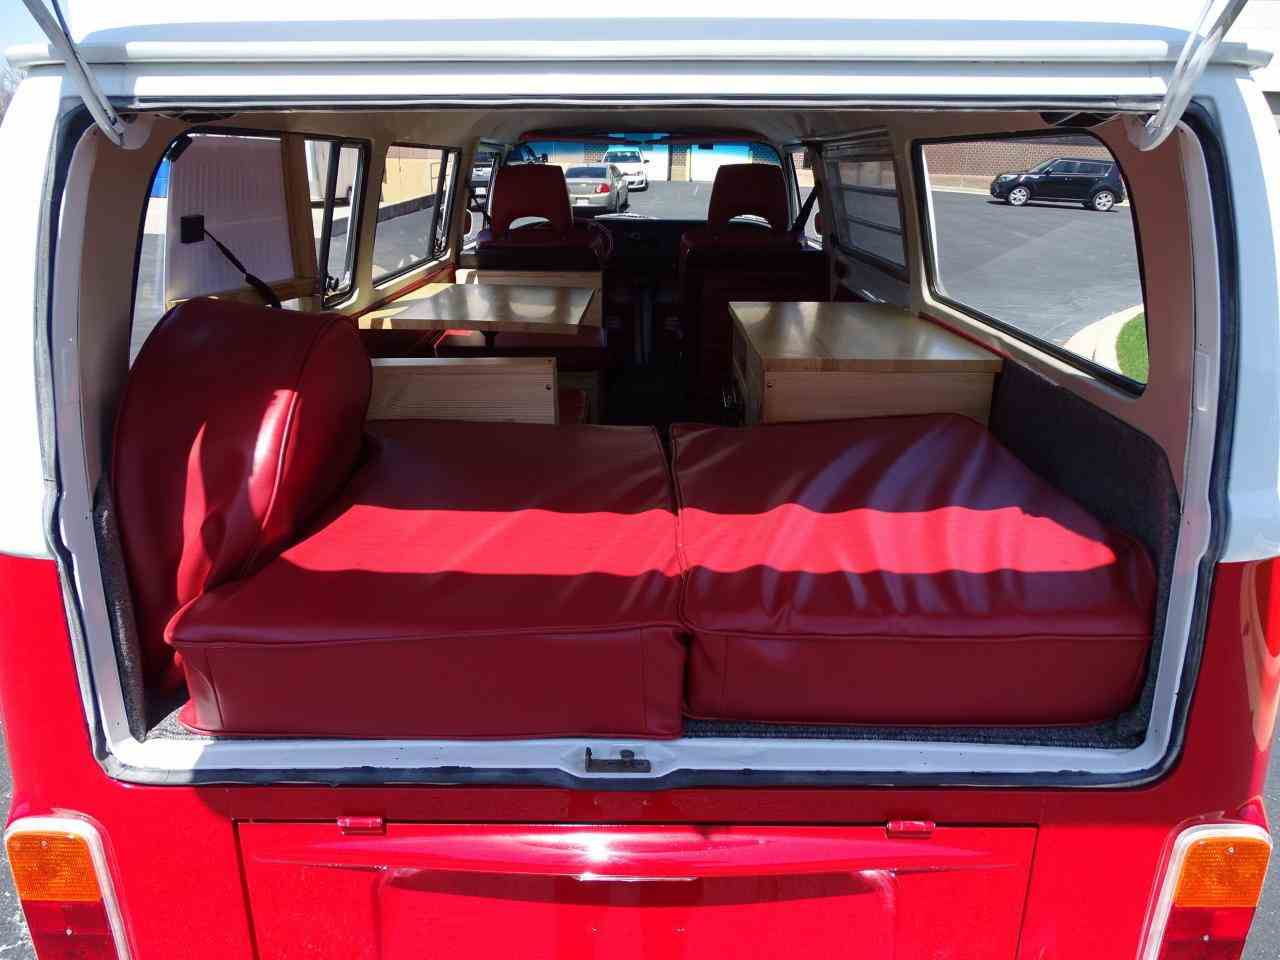 Large Picture of '74 Volkswagen Westfalia Camper located in O'Fallon Illinois - $34,995.00 Offered by Gateway Classic Cars - St. Louis - NEEL